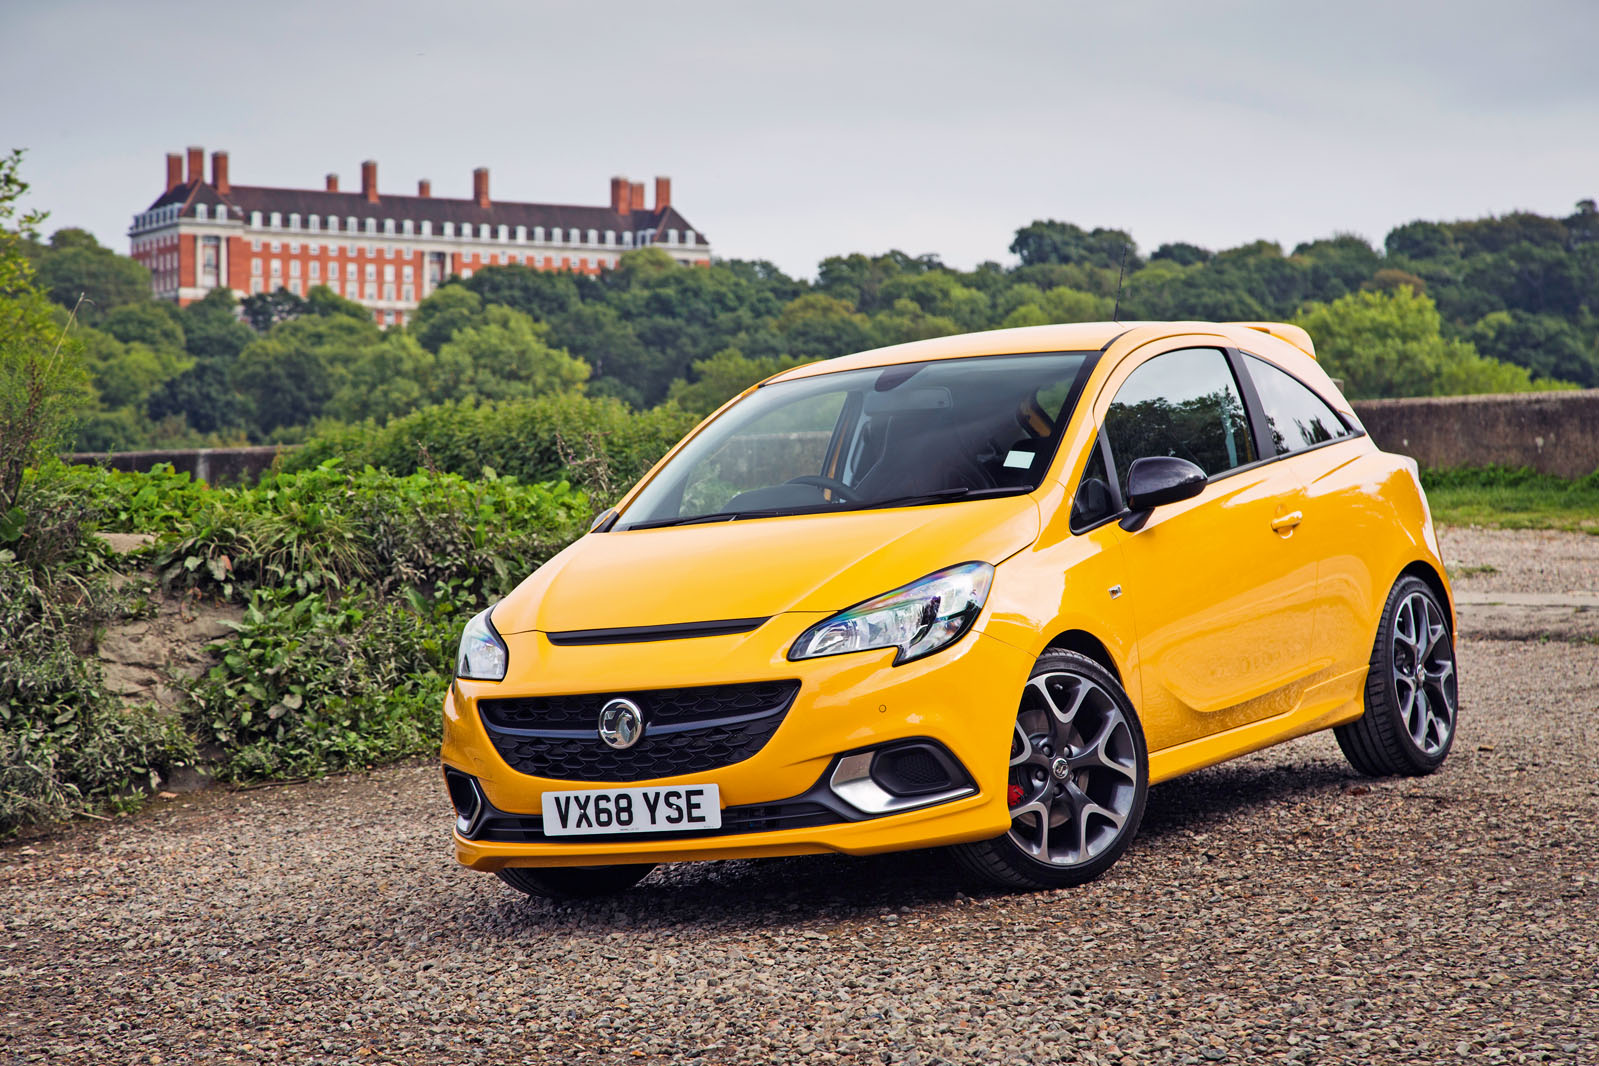 hight resolution of head for the hills hillclimbing in a vauxhall corsa gsi